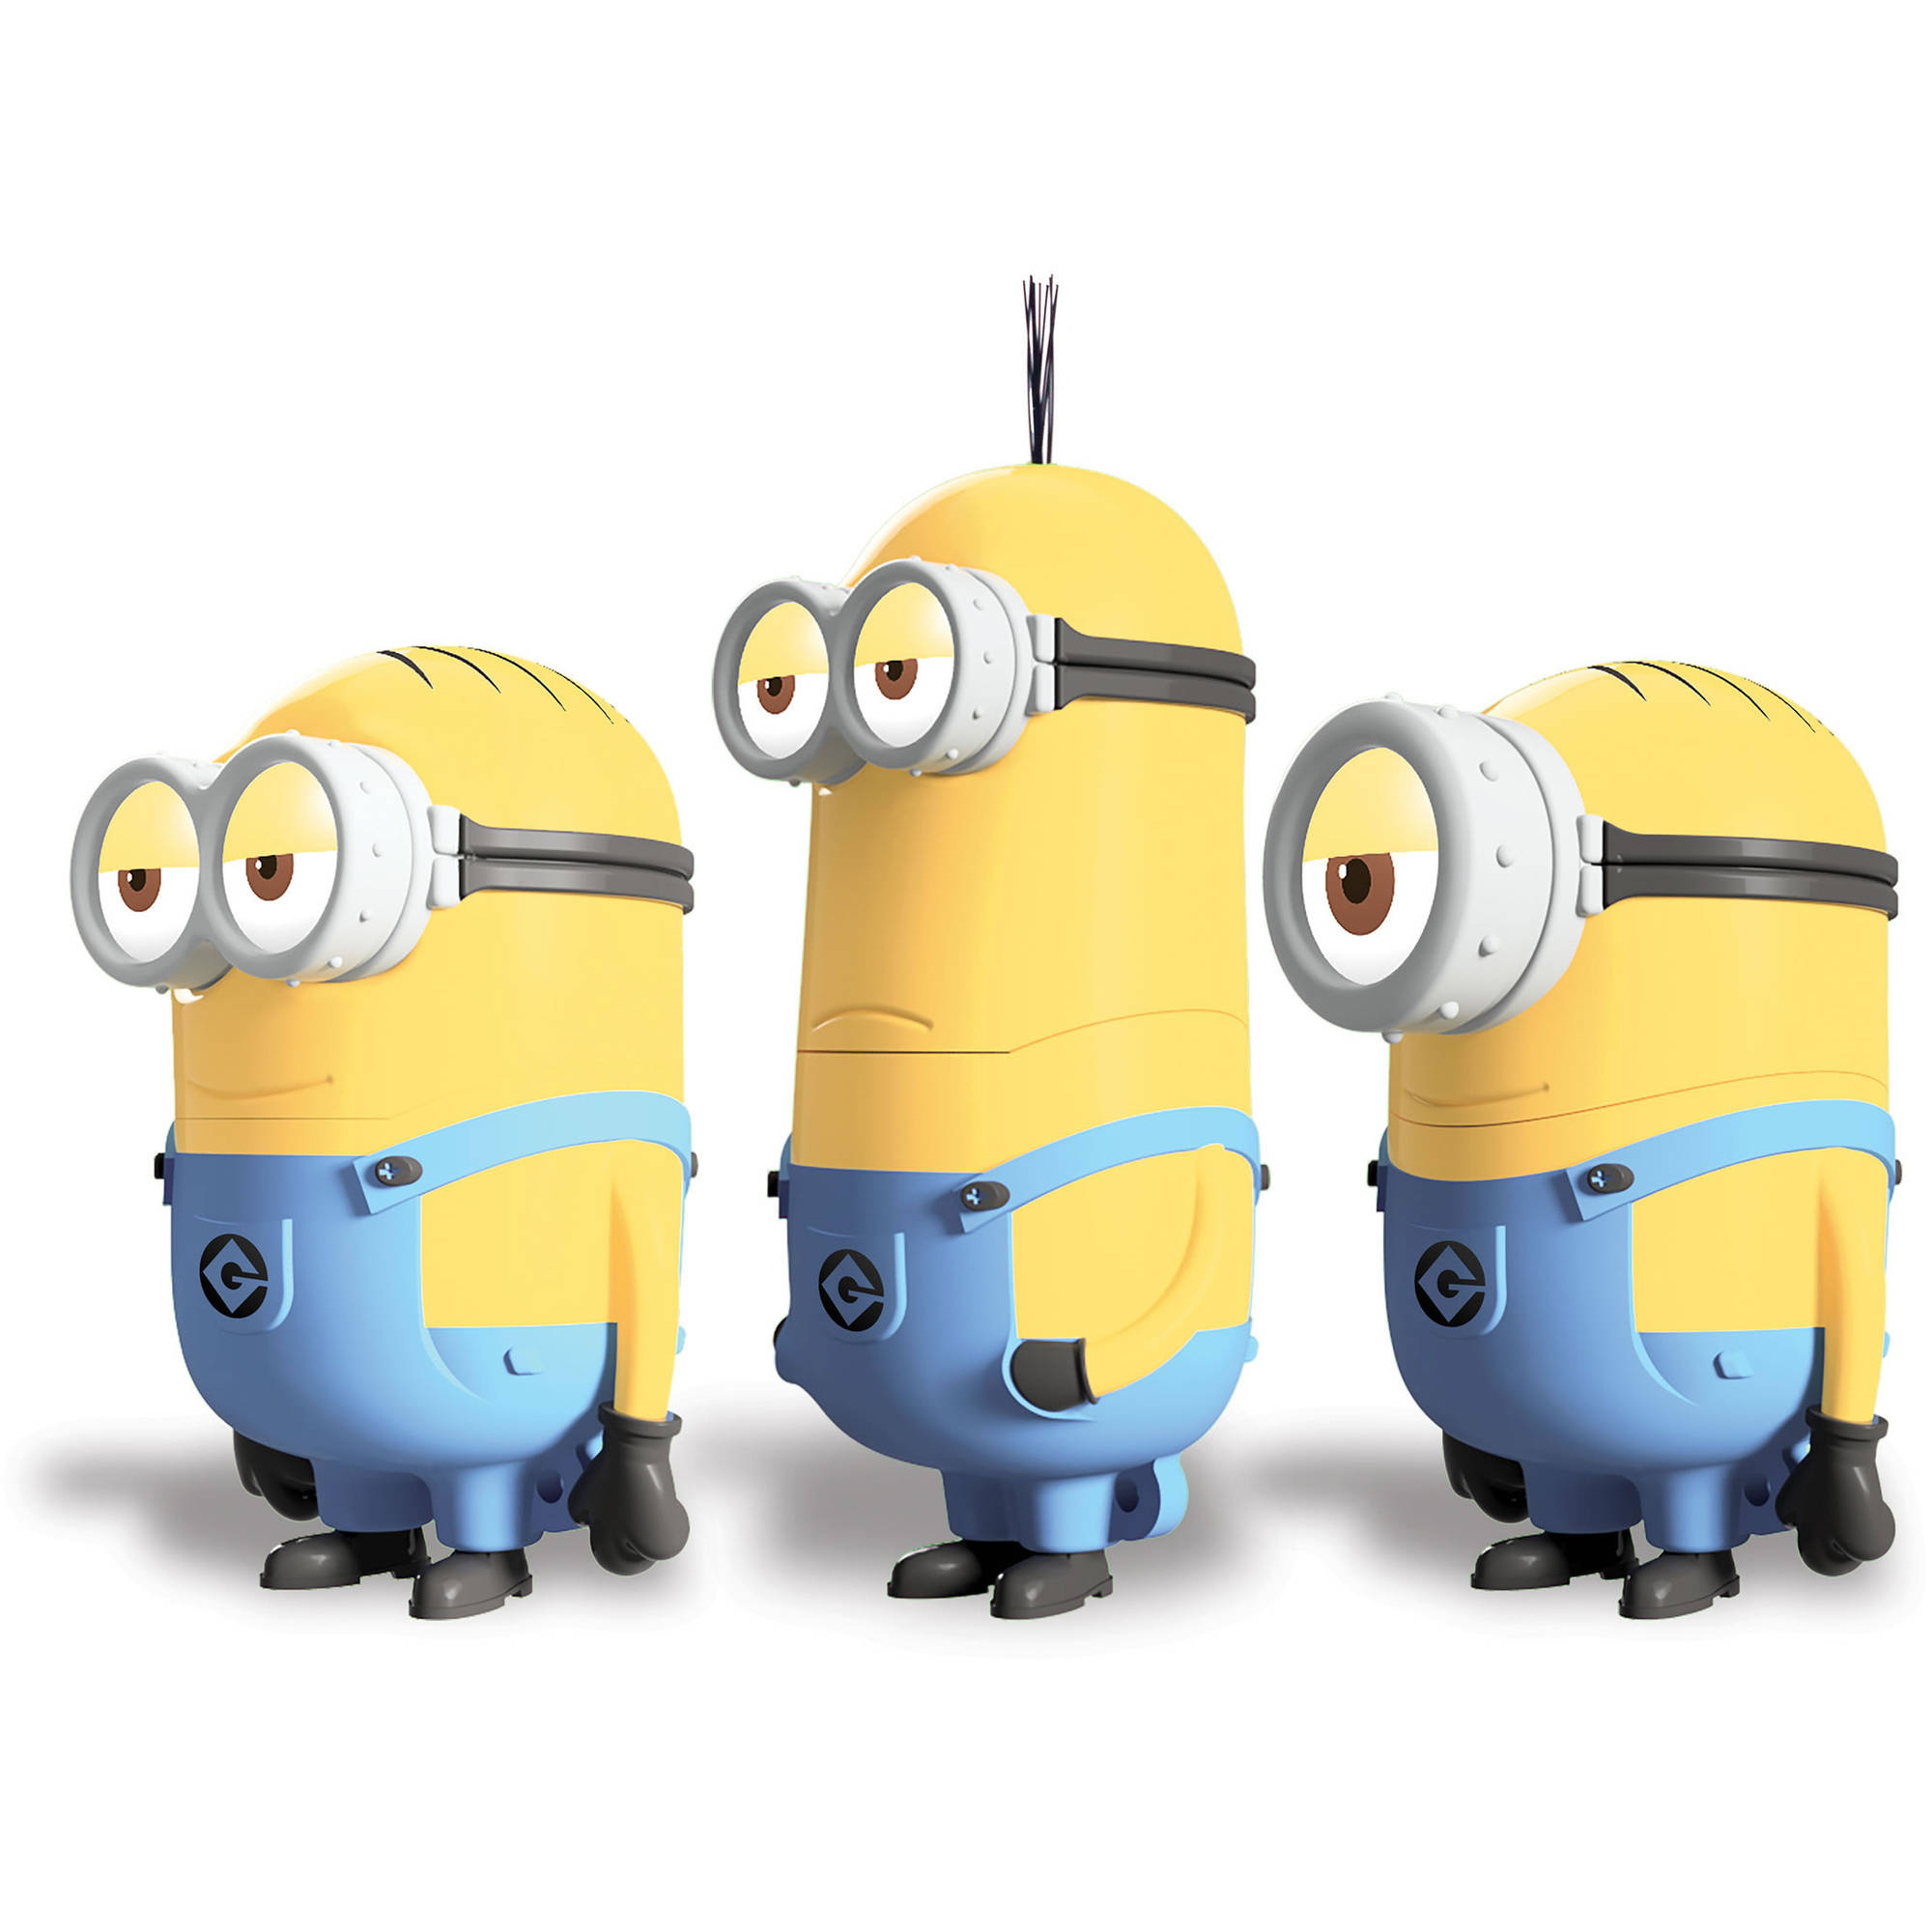 EP Minions 16GB USB Flash Drive, Dave, Kevin, Stuart 3-Pack